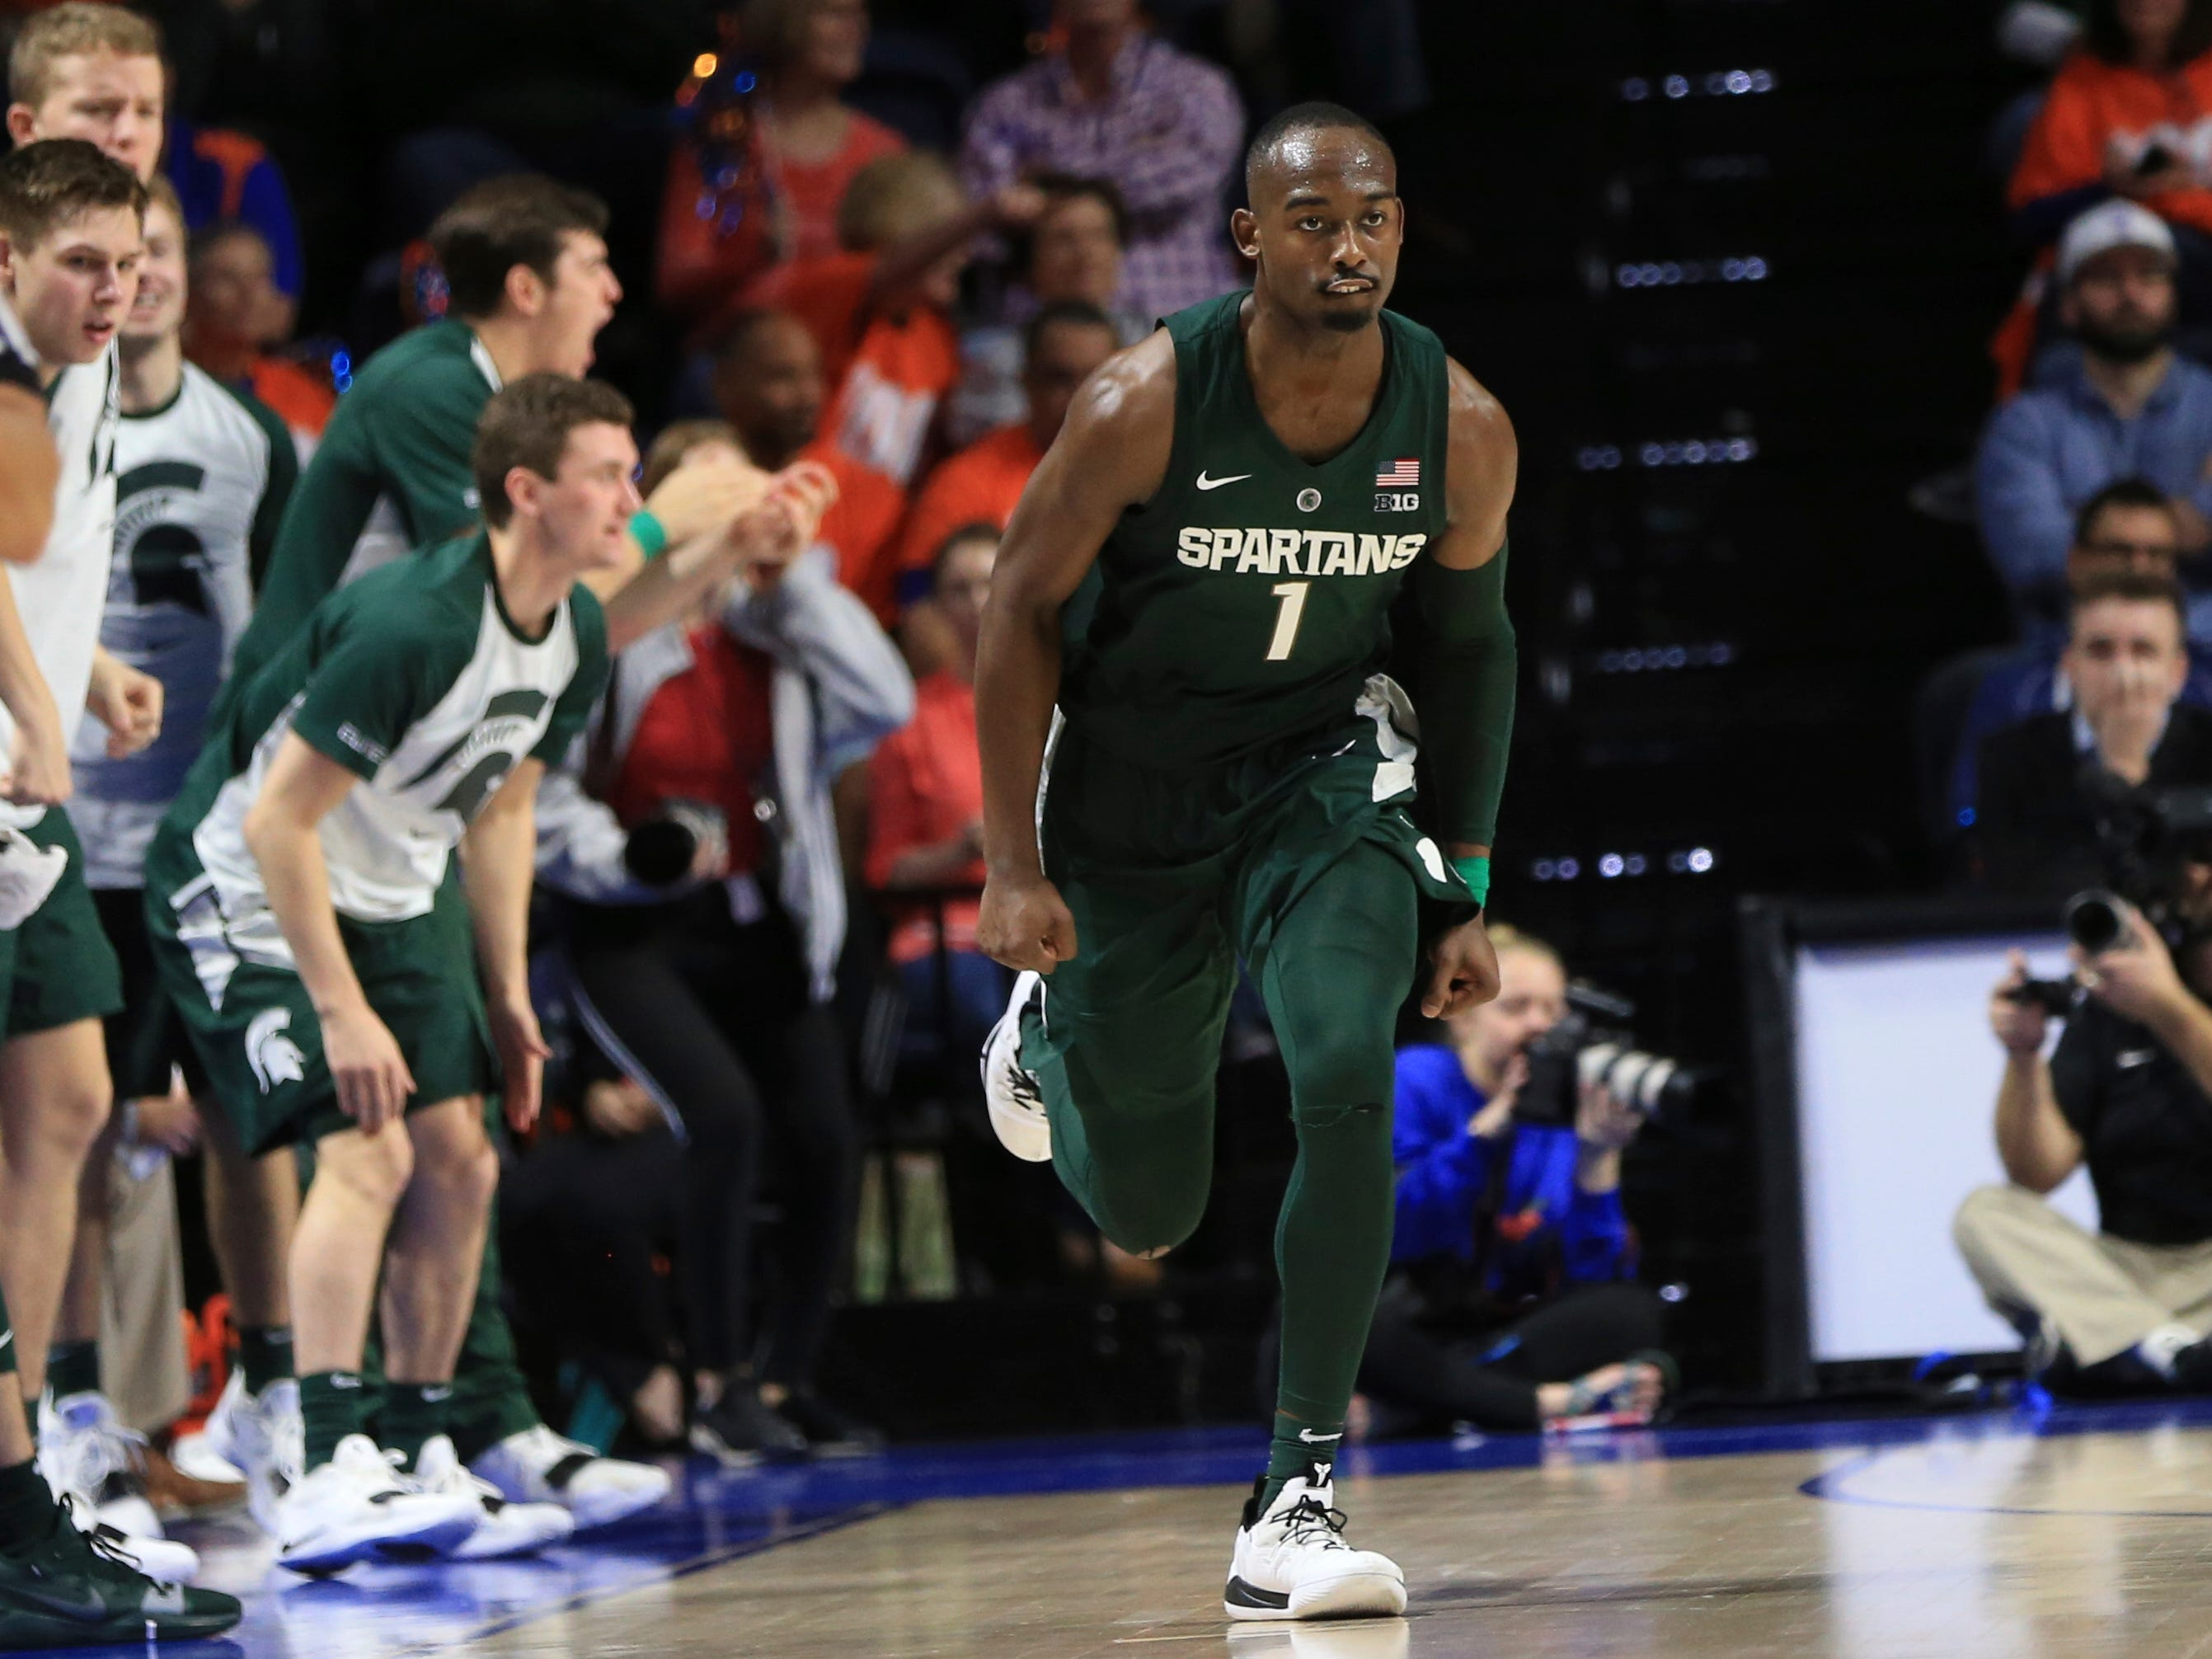 Michigan State guard Joshua Langford (1) celebrates a 3-point shot against Florida during the second half.